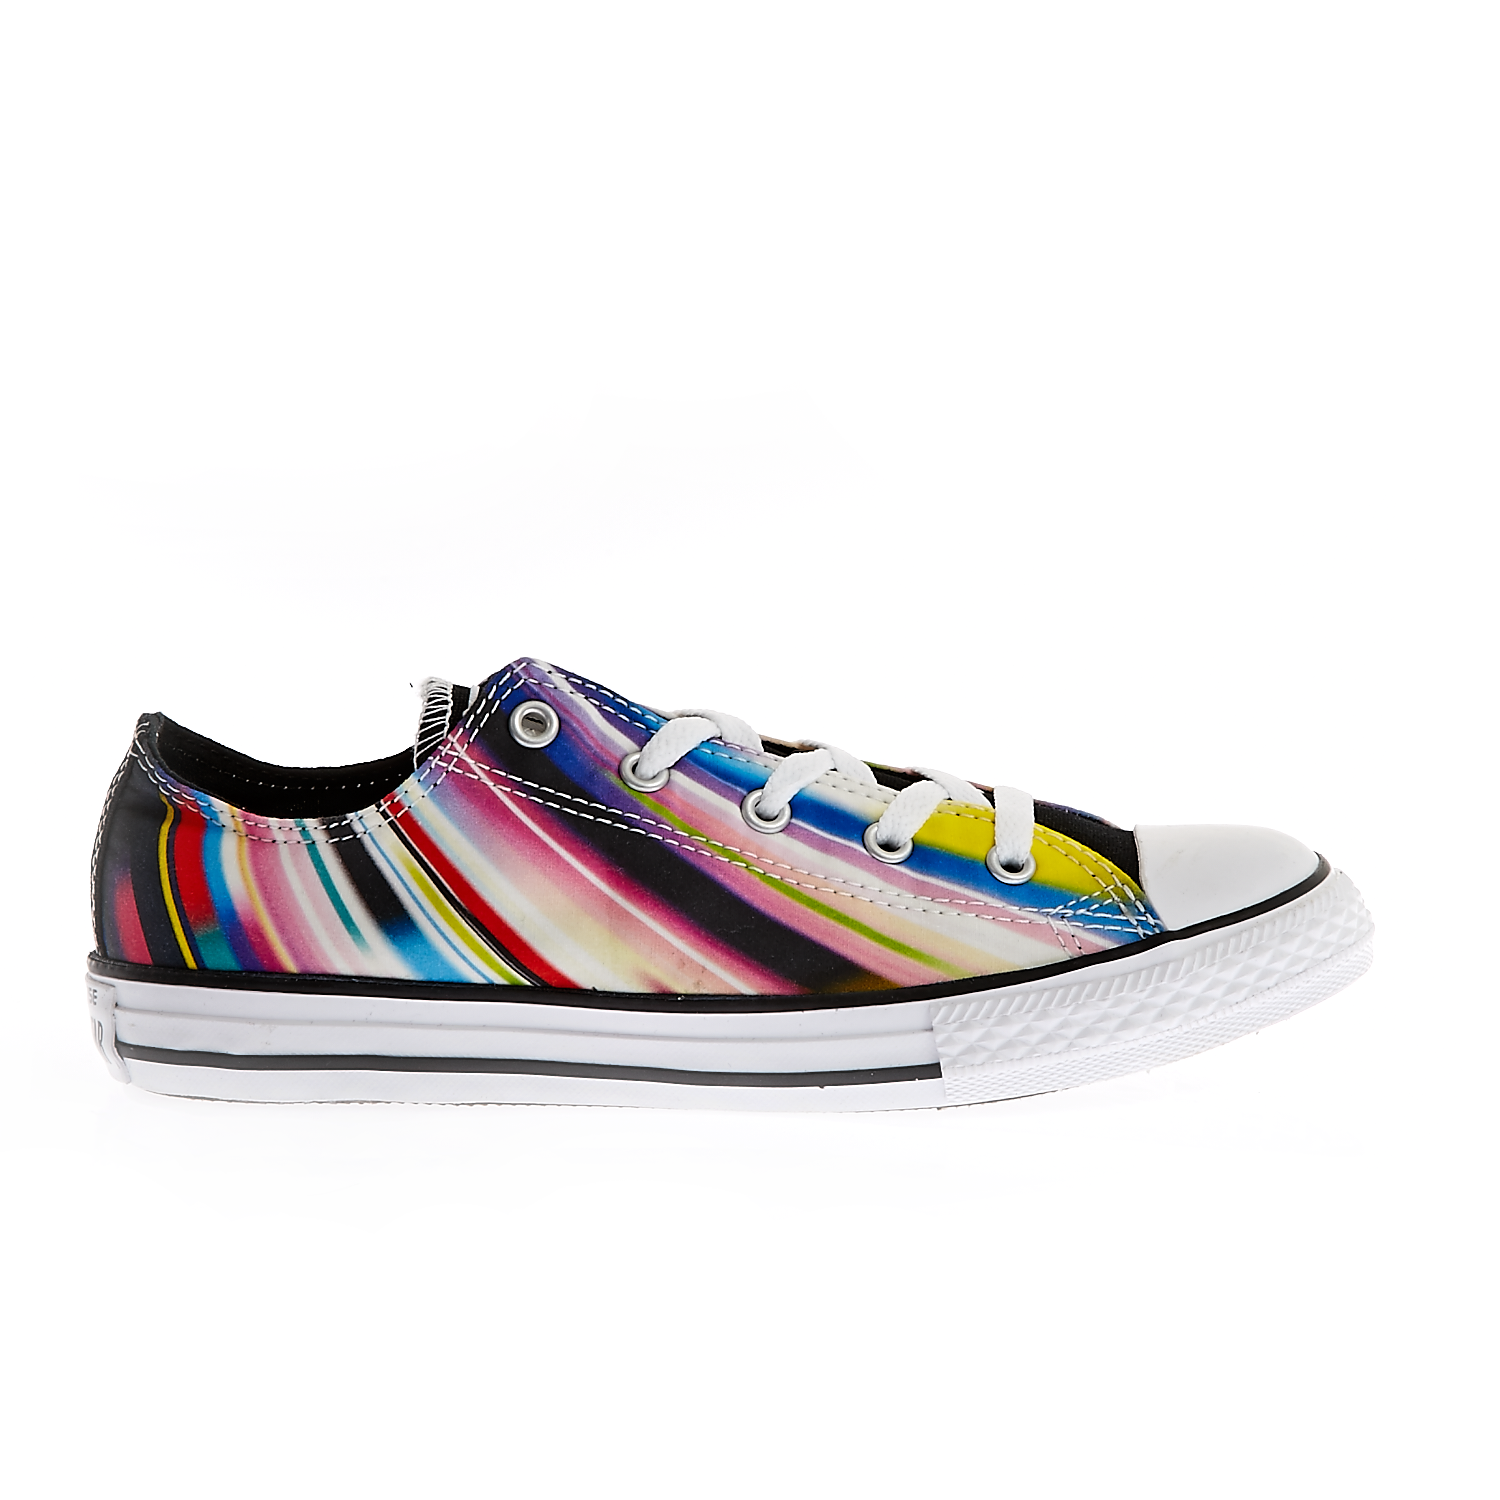 07cfd70b632 CONVERSE - Παιδικά παπούτσια Chuck Taylor All Star Ox λευκά